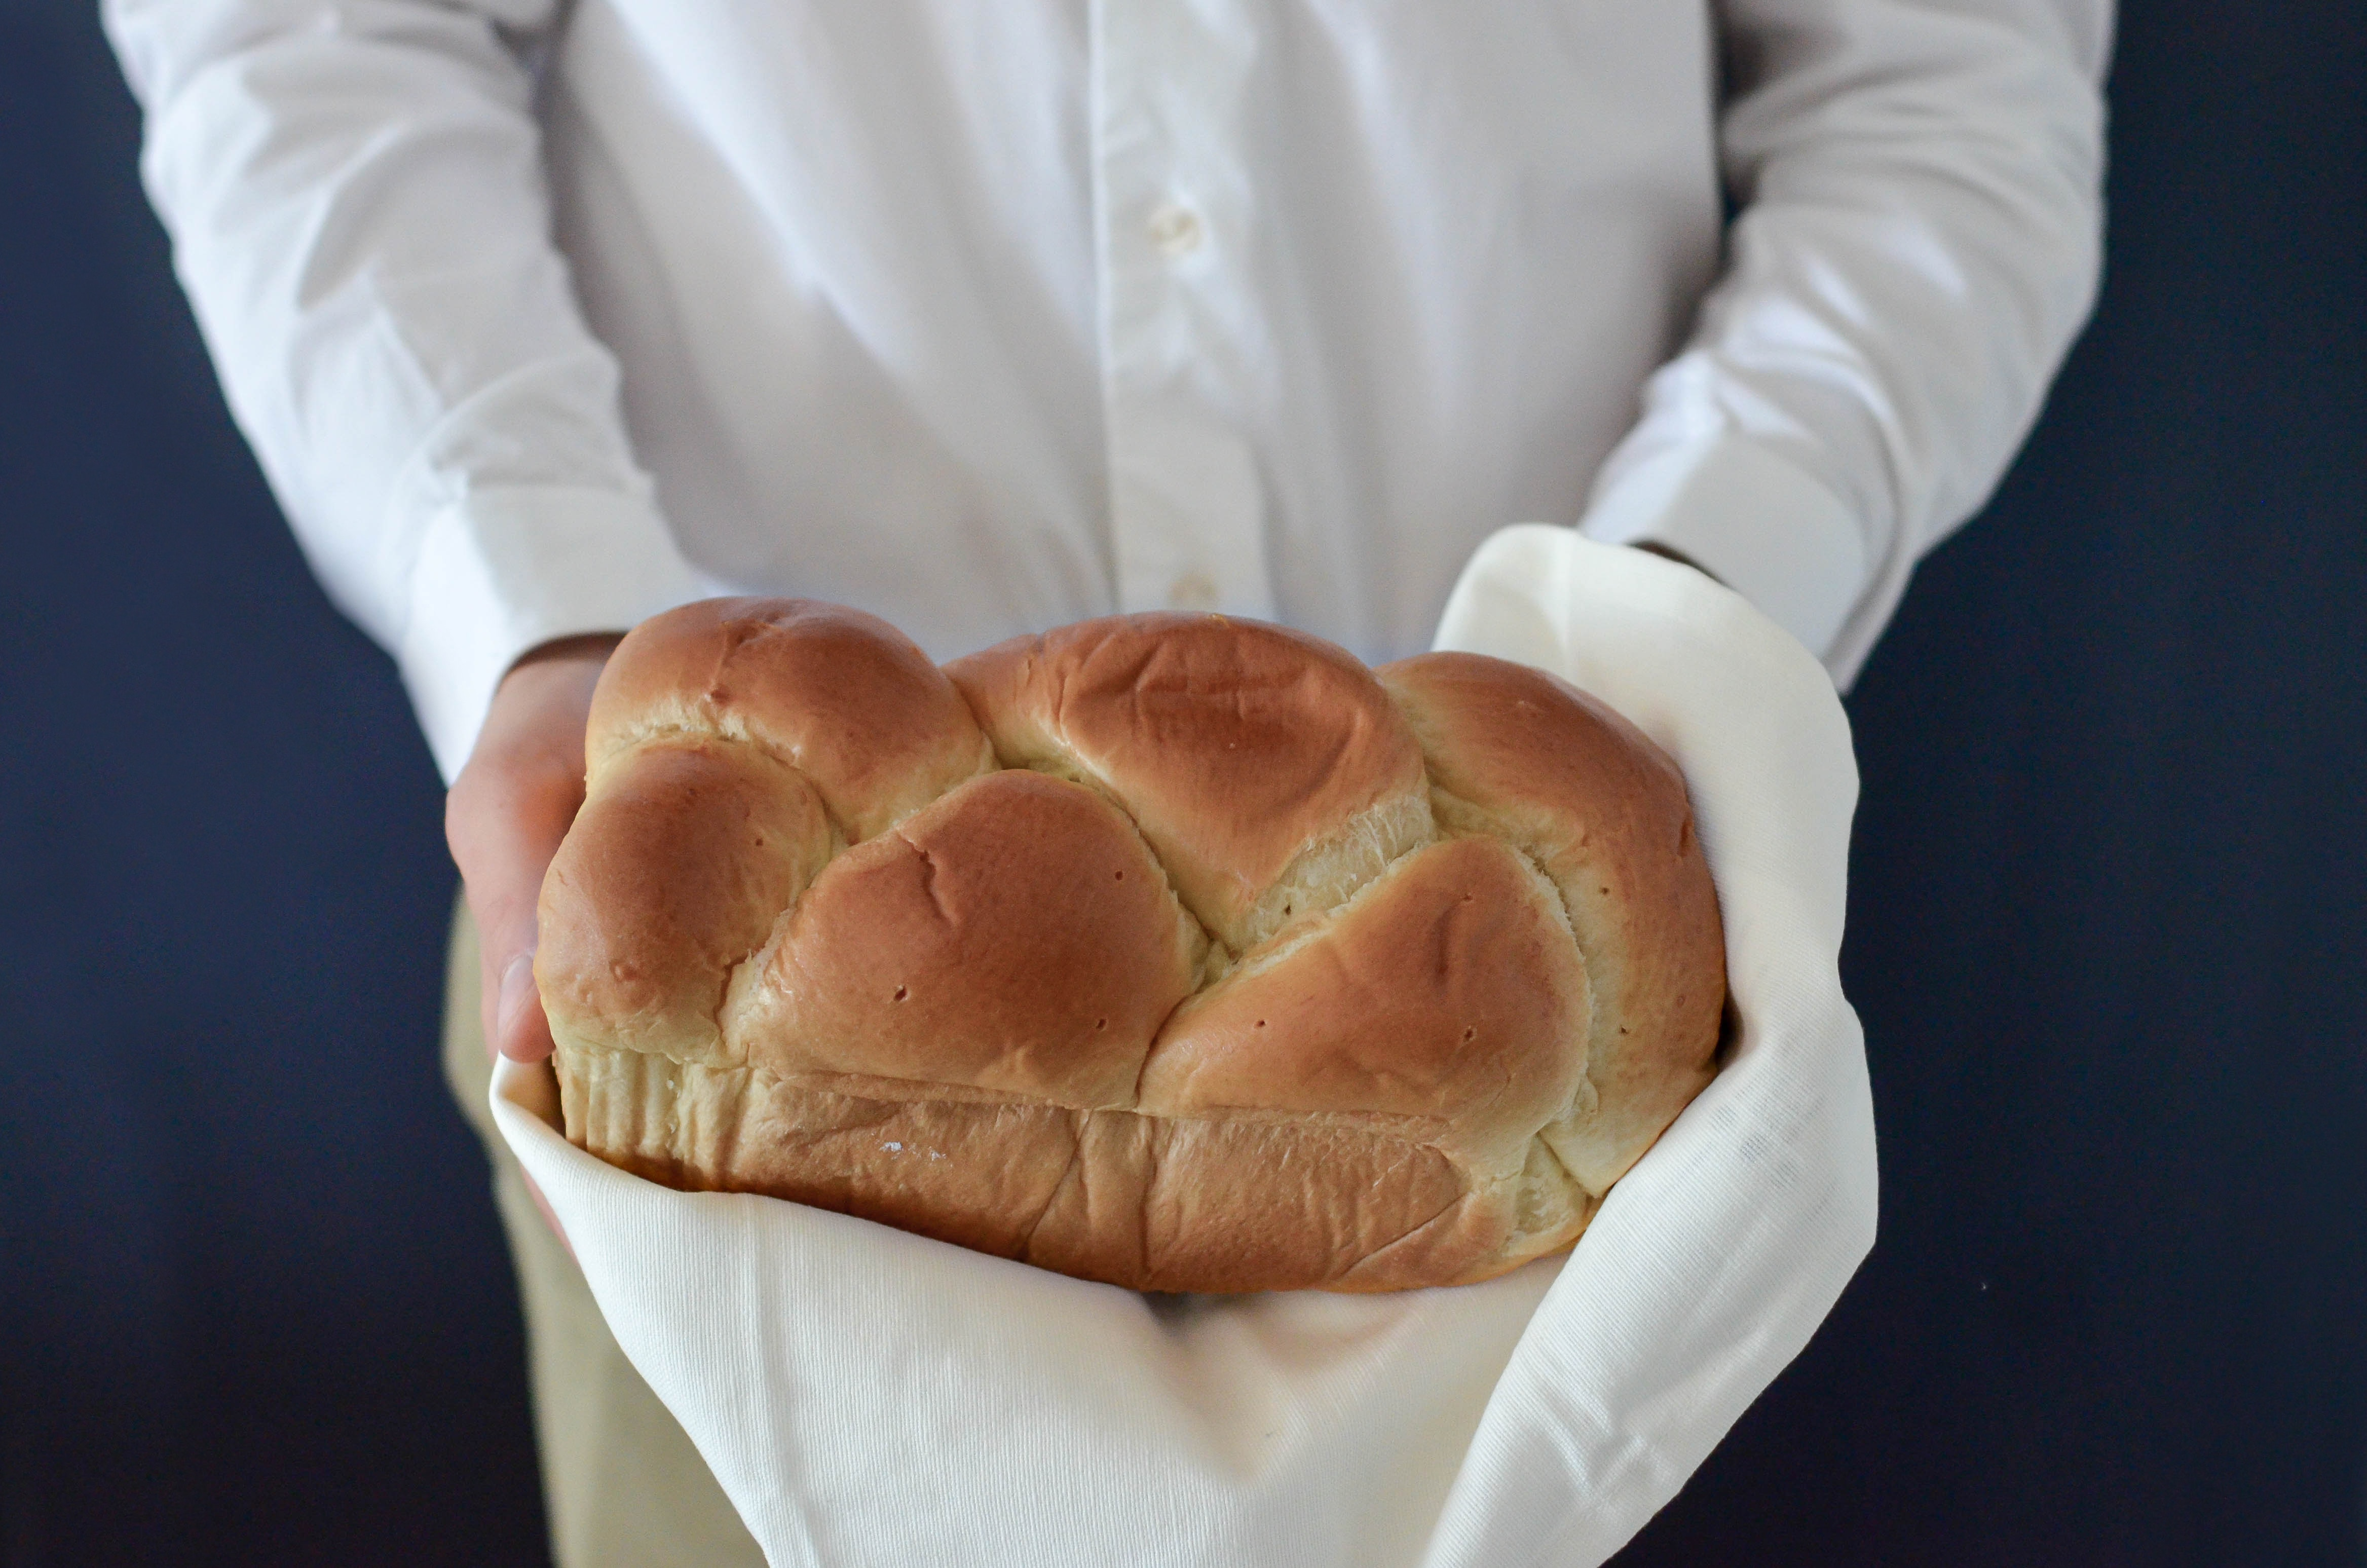 Loose bread 5002 in both hands 56191